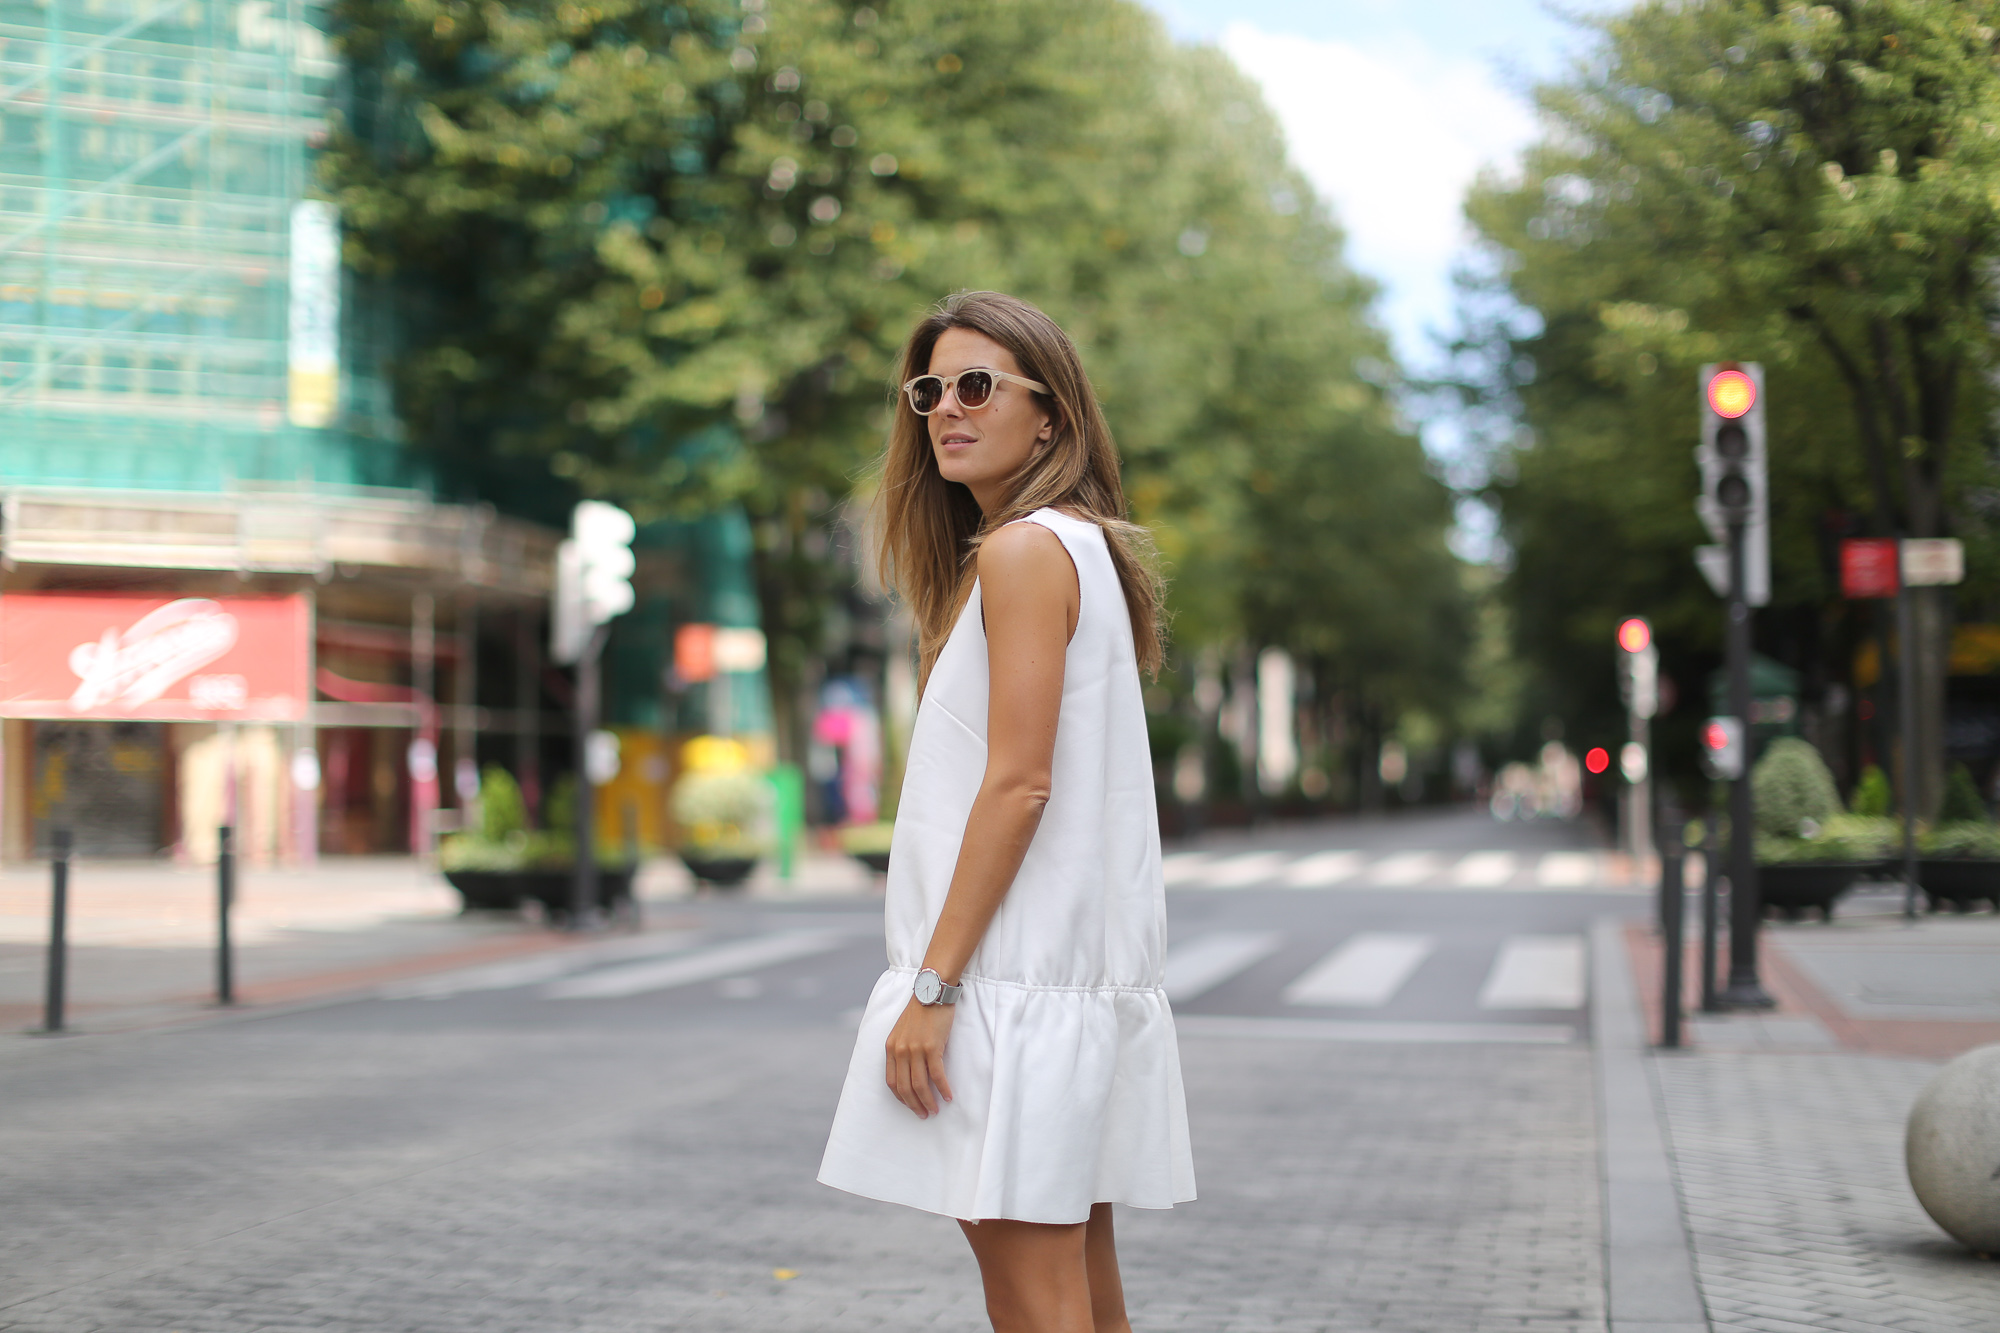 Clochet_h&m_trend_white_neoprene_dress_-1-5